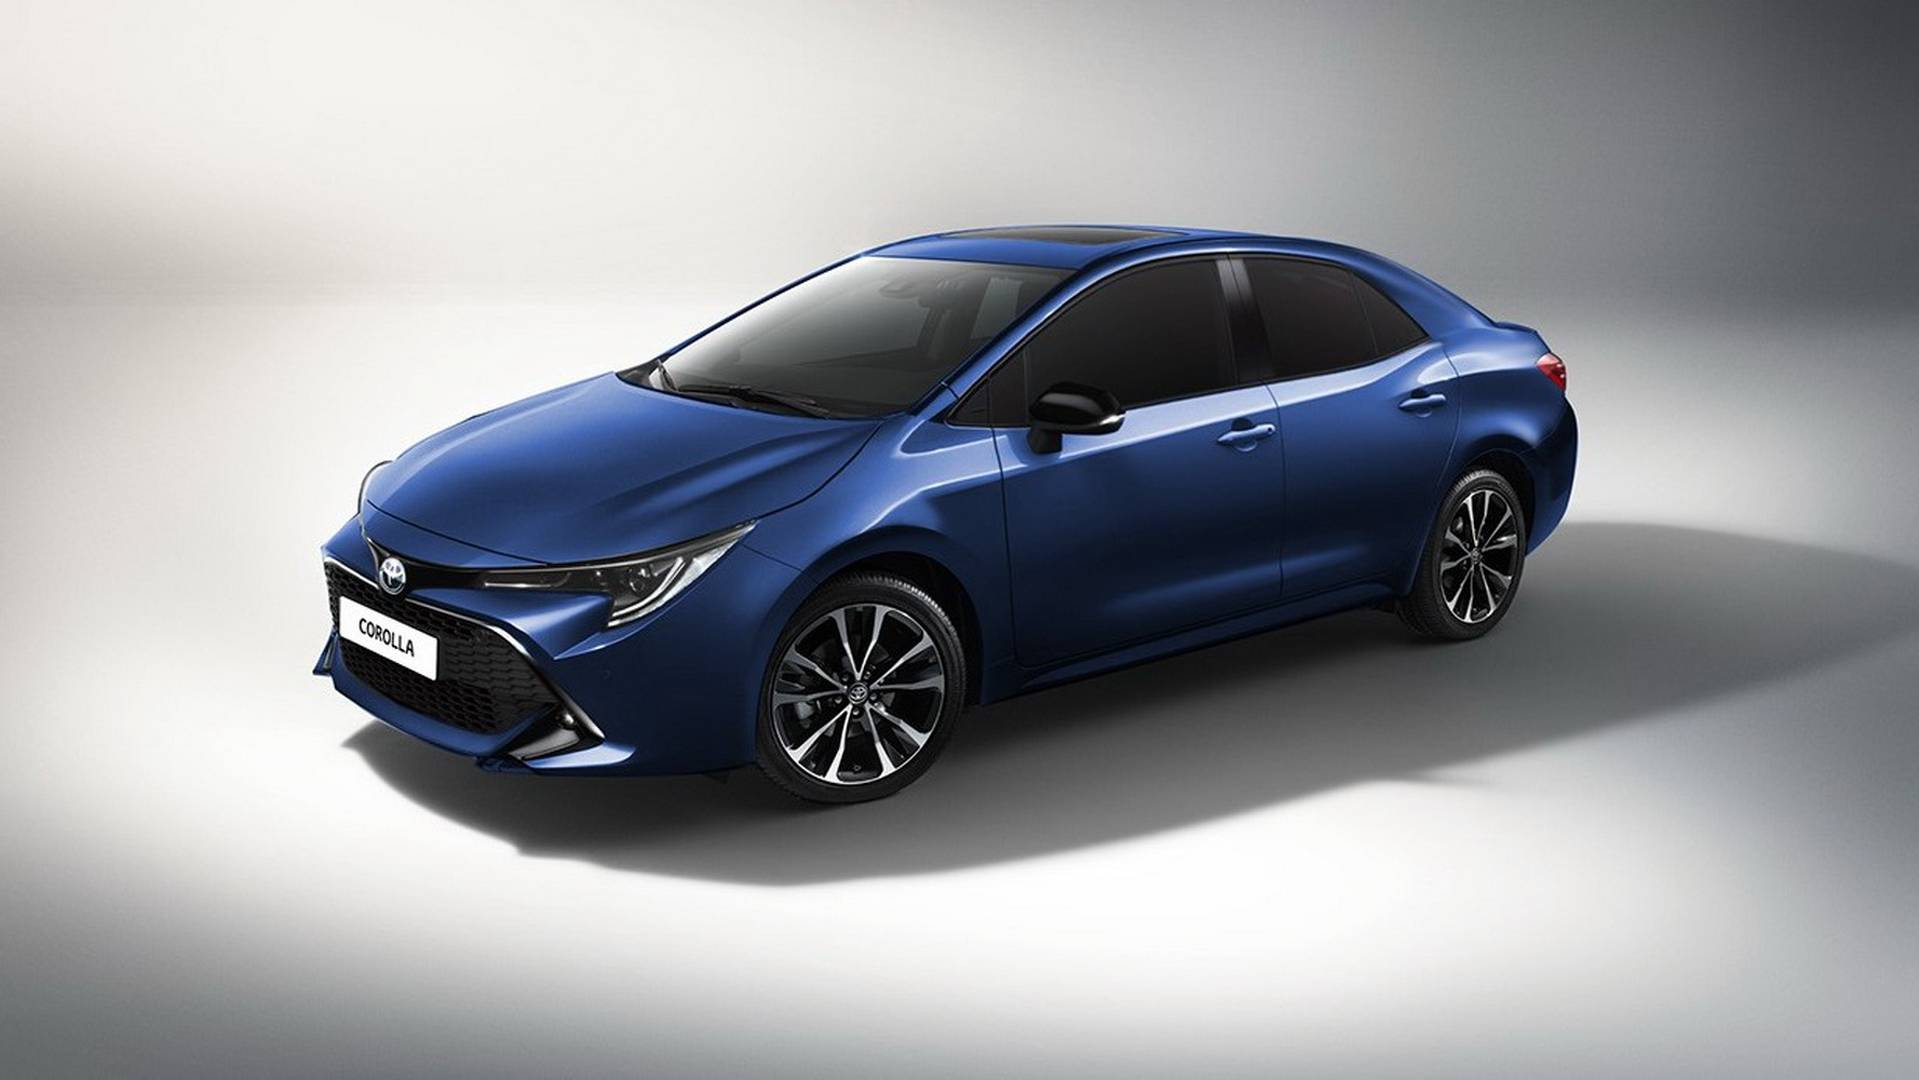 48 The Best 2020 Toyota Avensis Price and Review